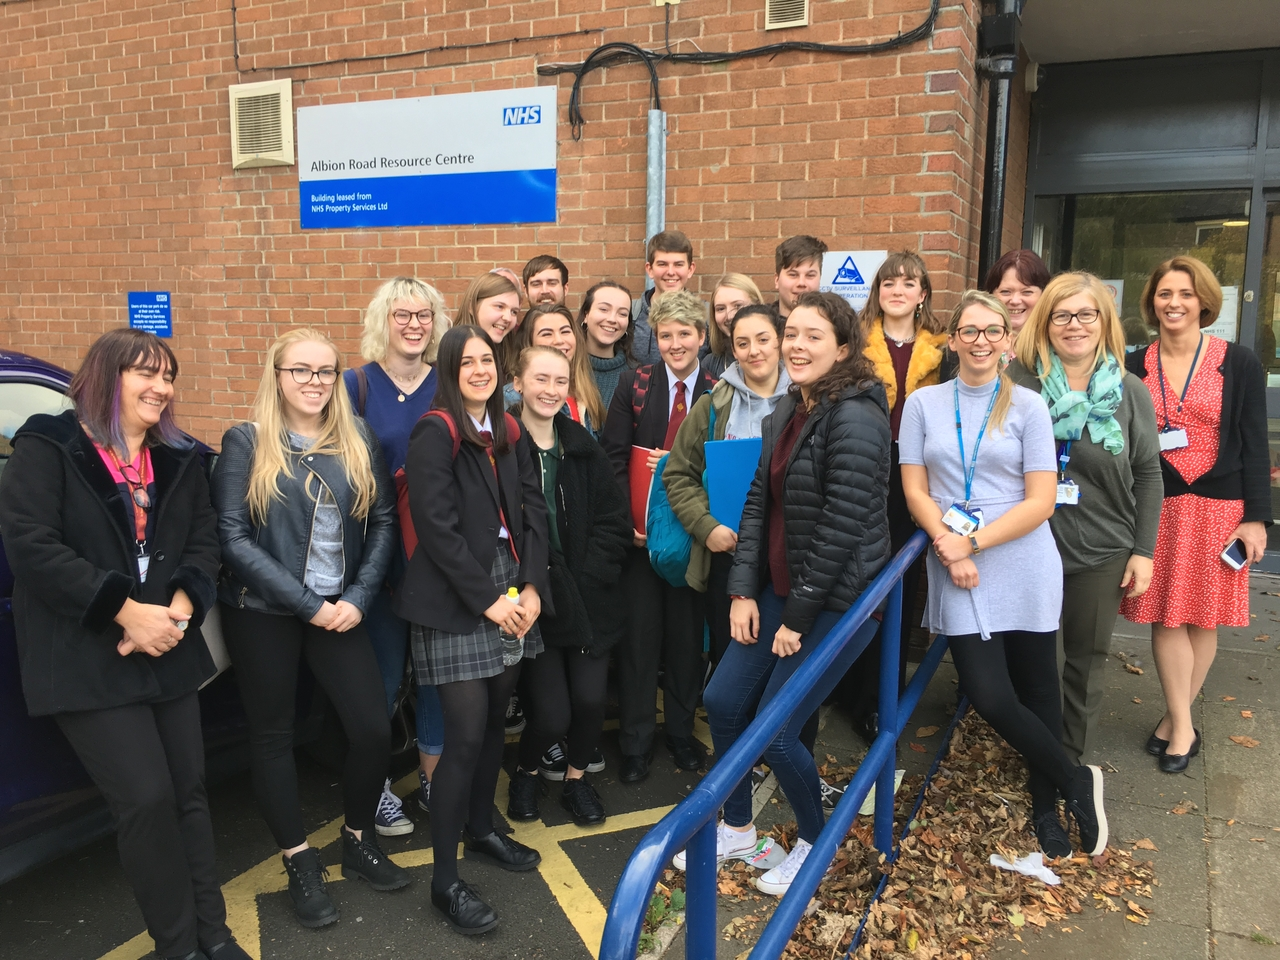 Young people lead mental health clinic re-design